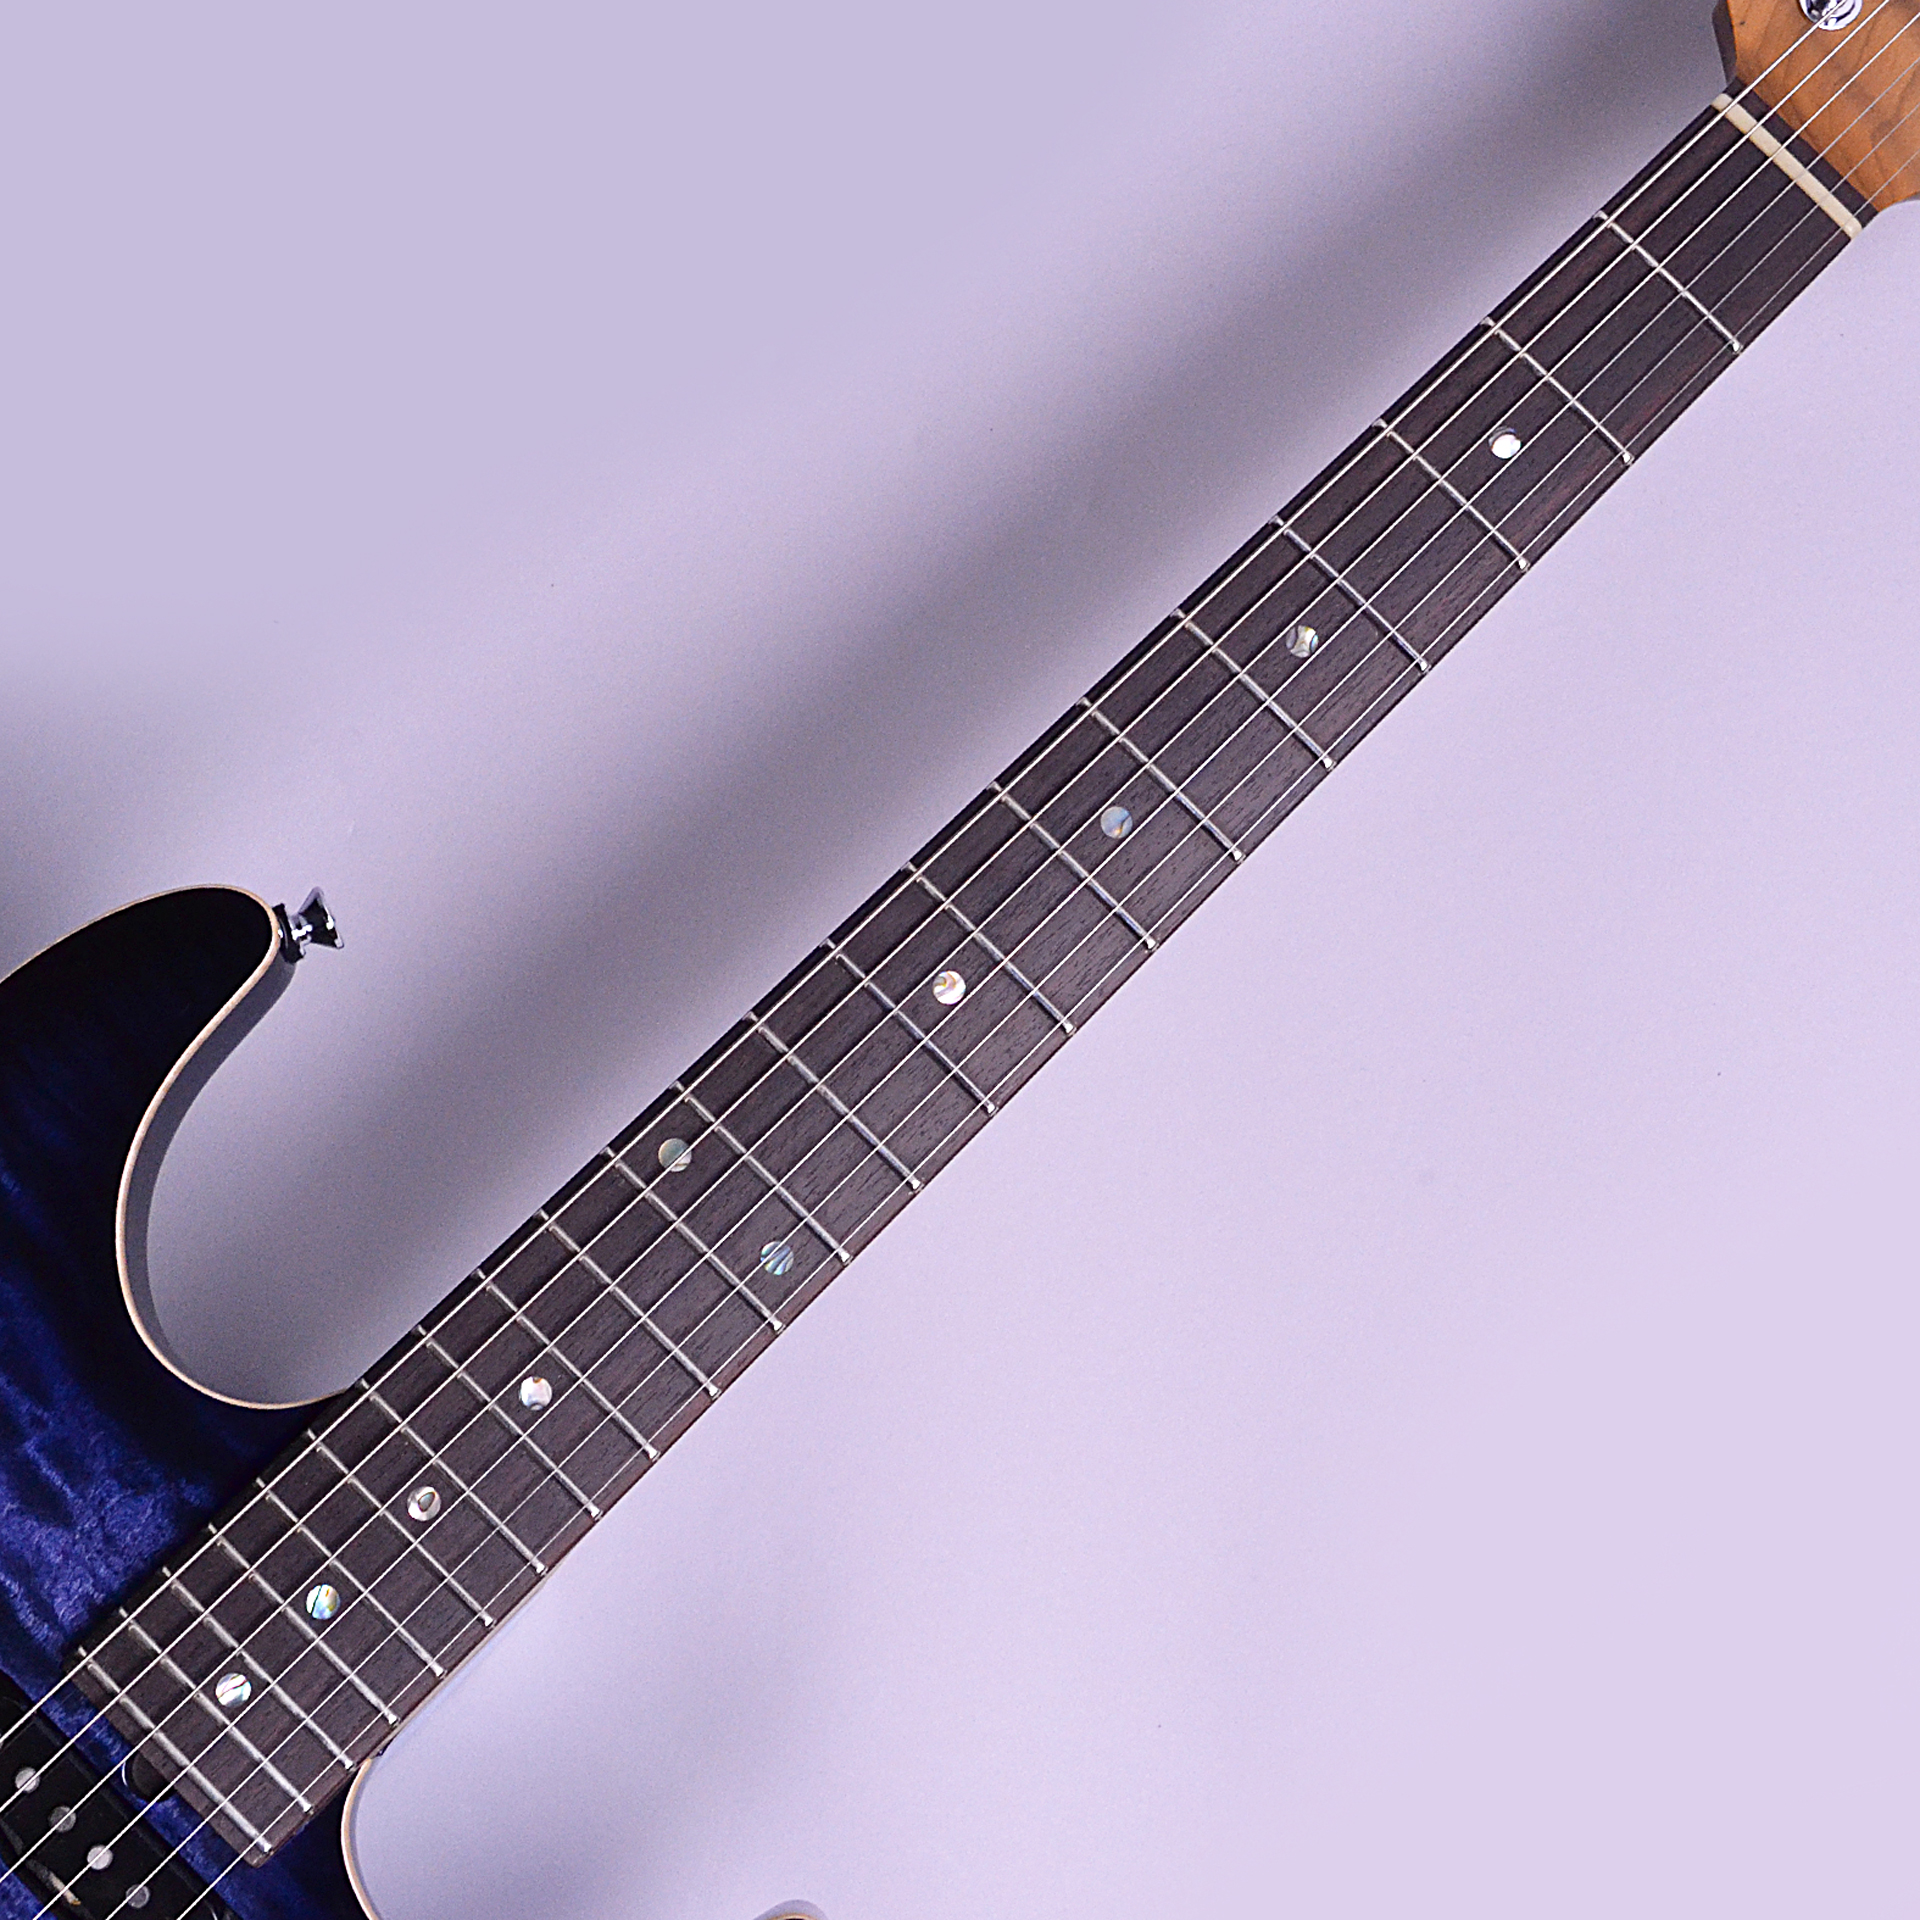 DST-22 Quilt Roasted Flame Maple Neckの指板画像